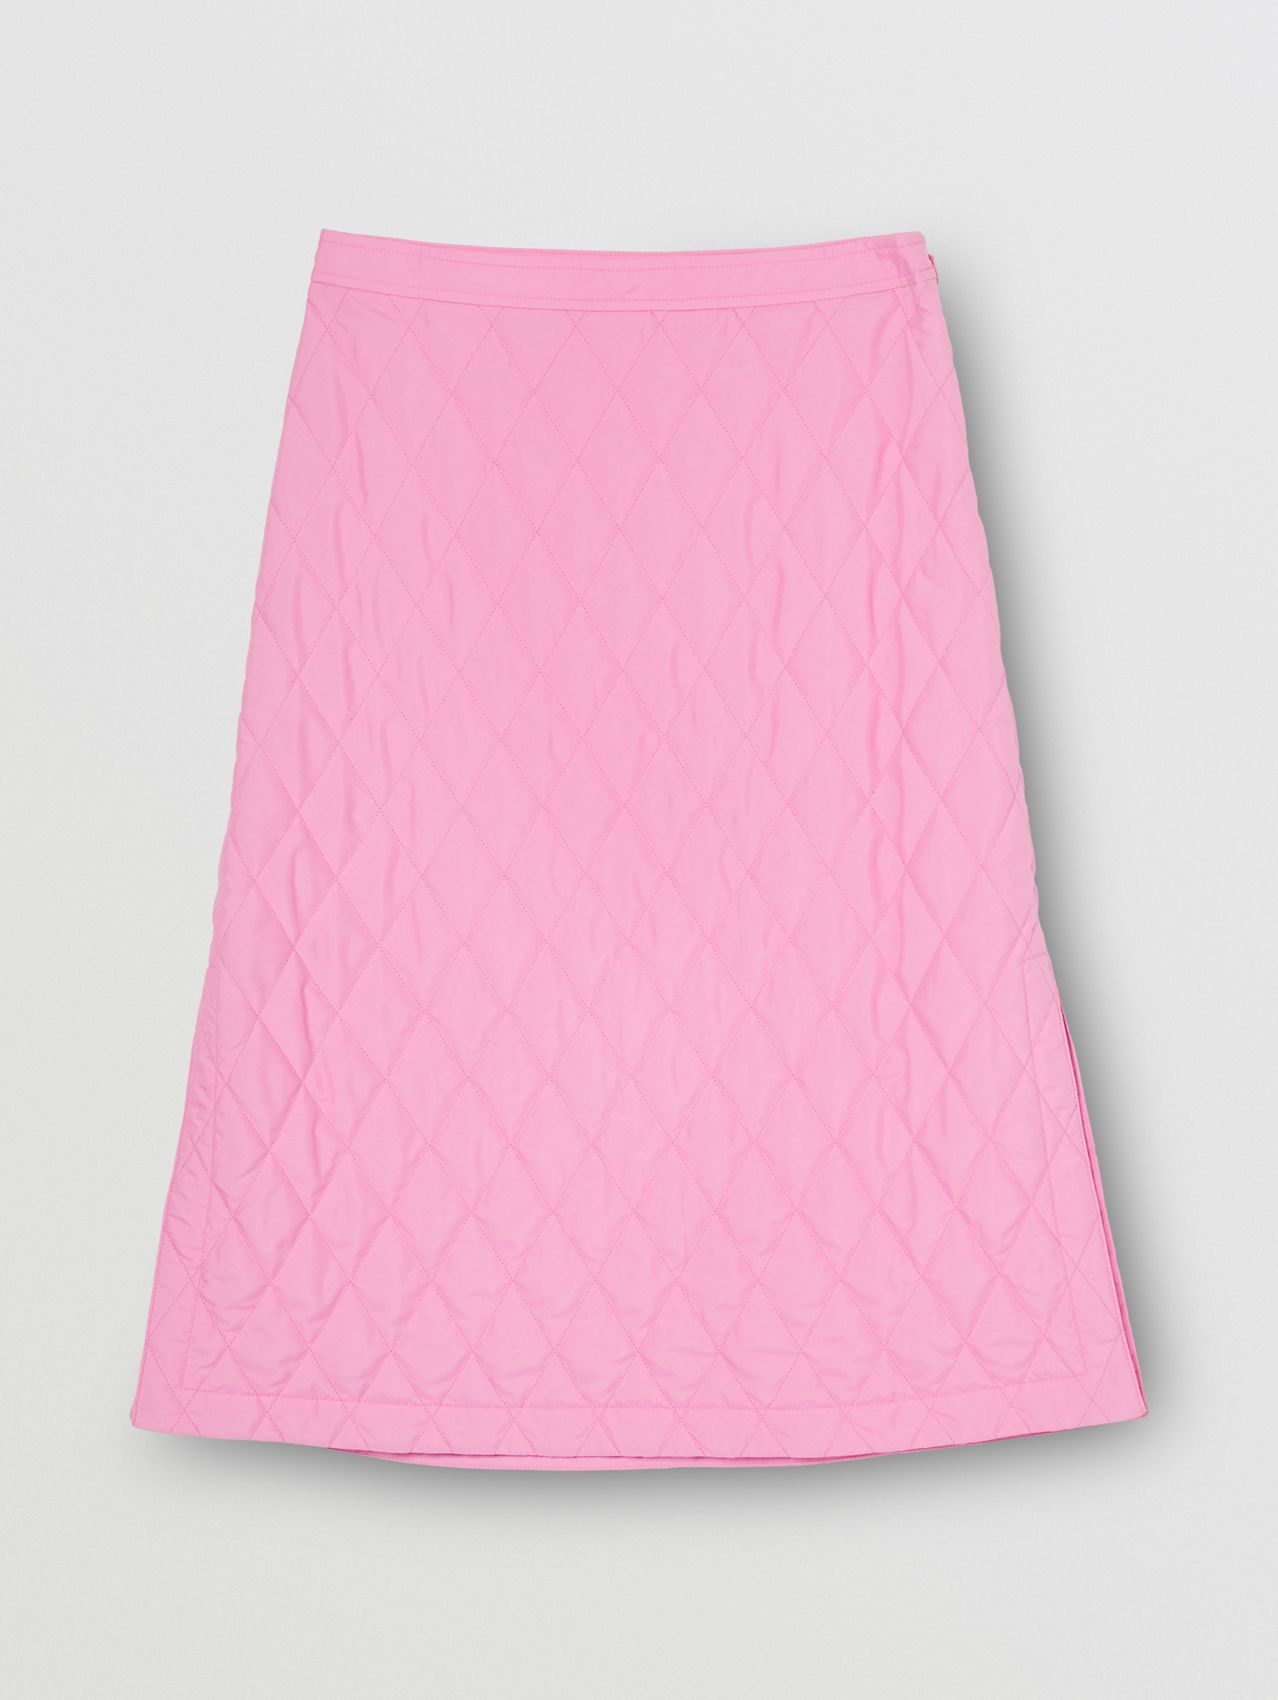 Diamond Quilted Skirt in Bubblegum Pink